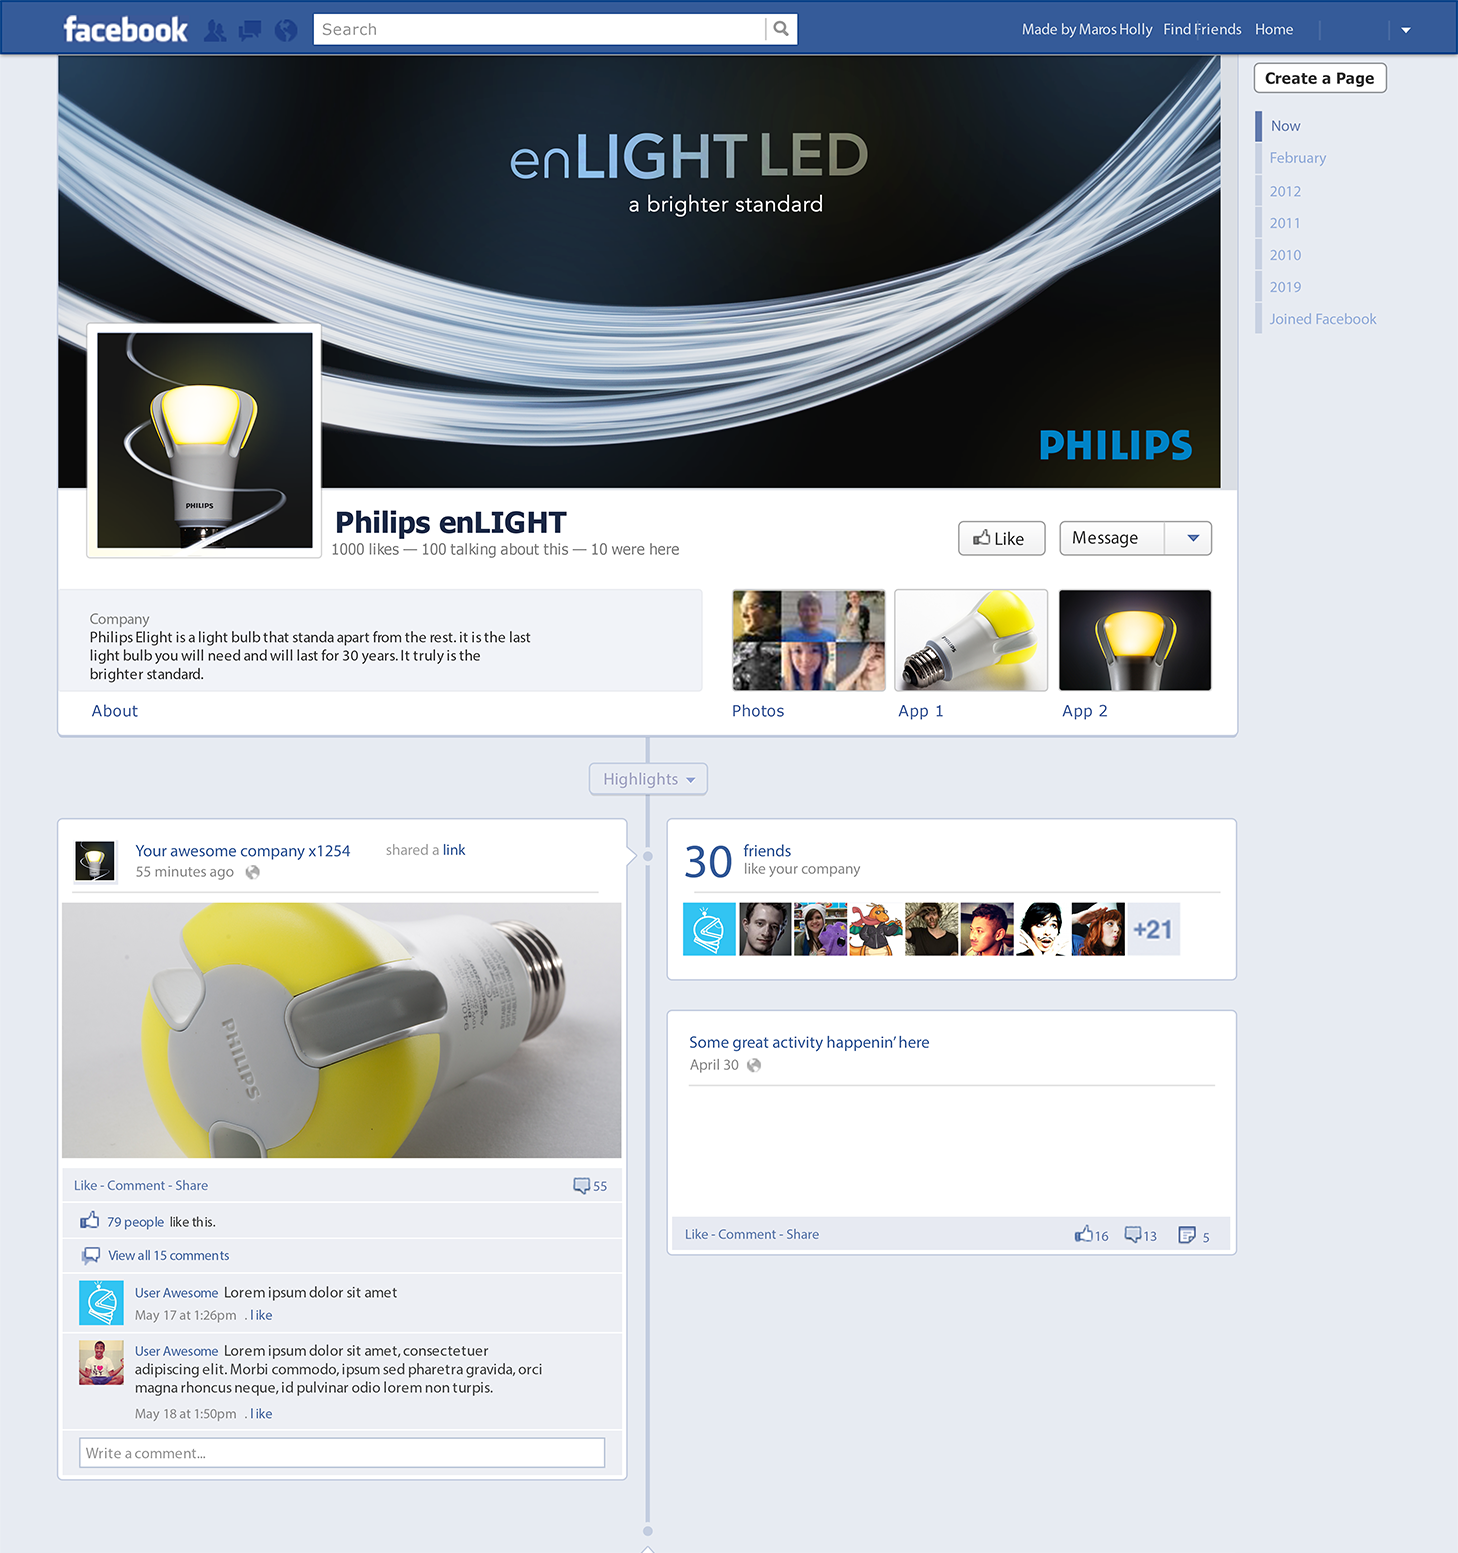 Enilight_facebook.png